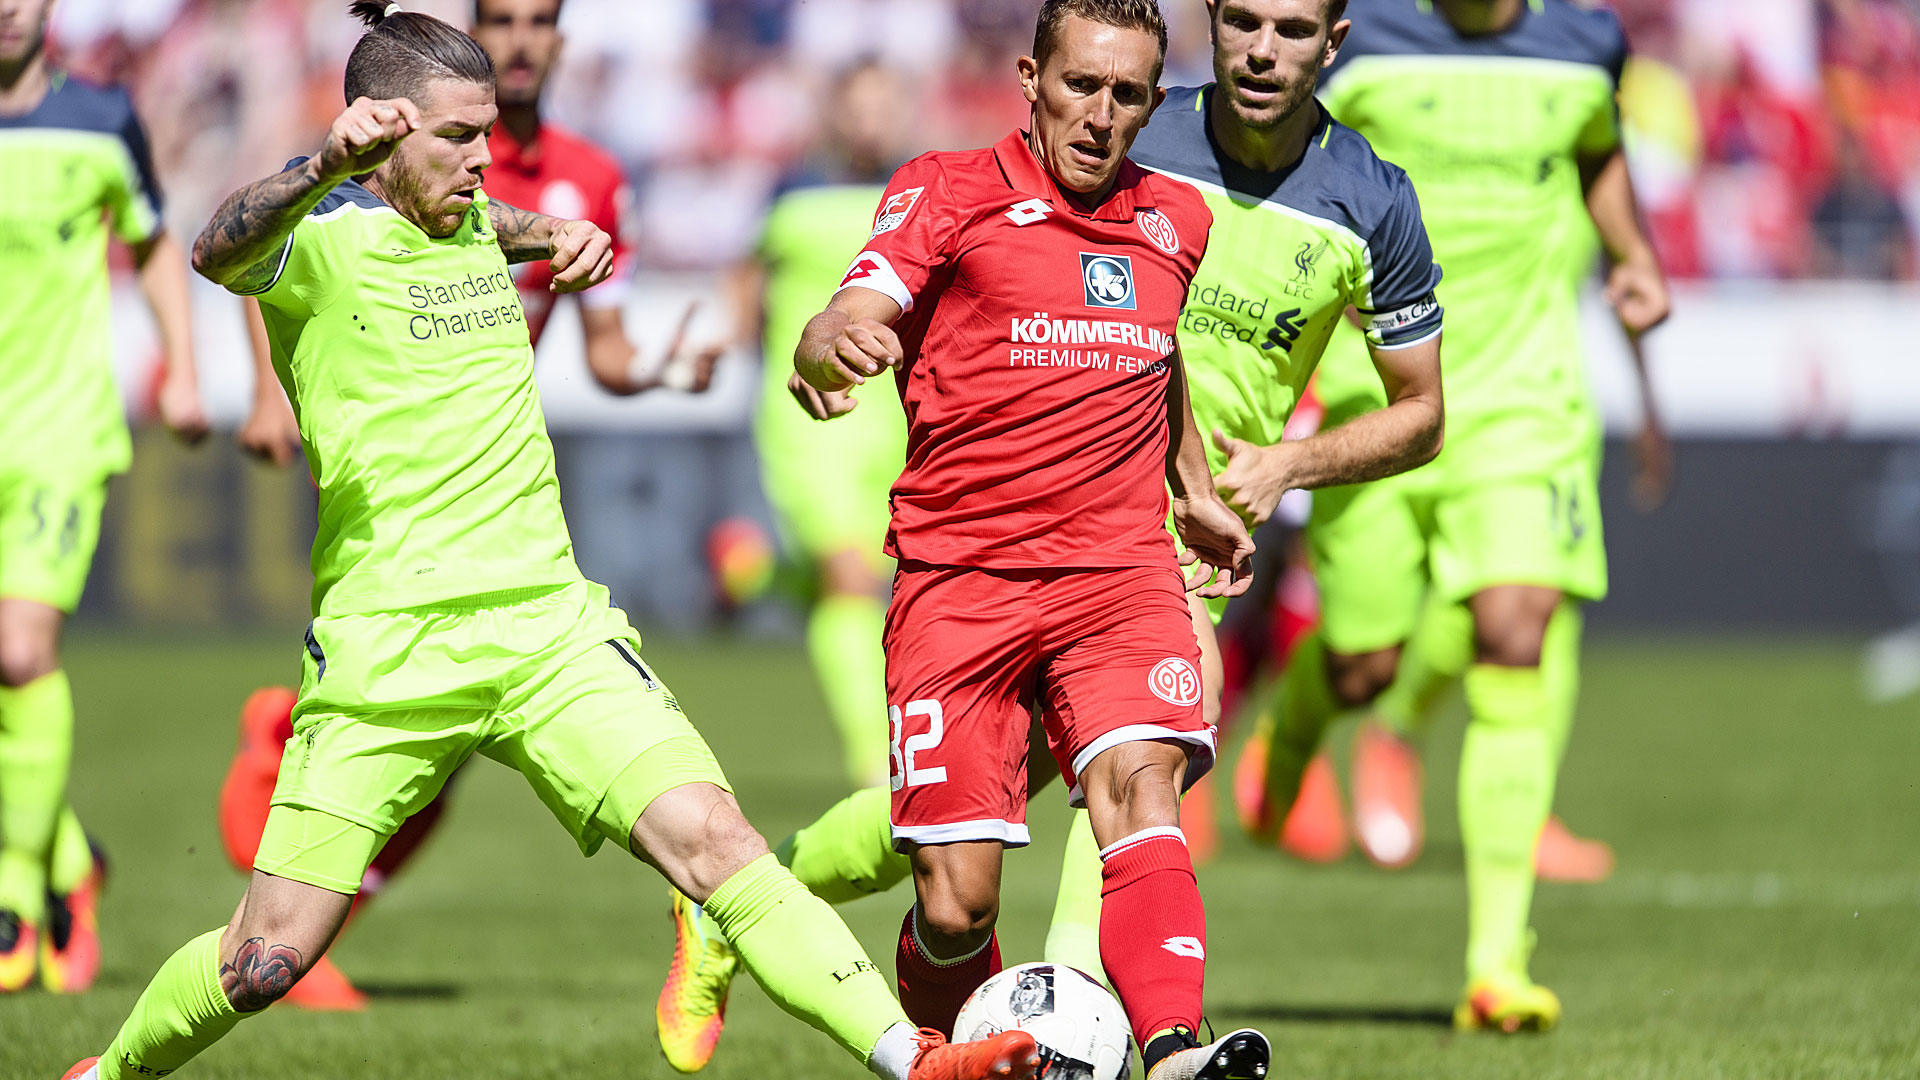 Video: Mainz 05 vs Liverpool